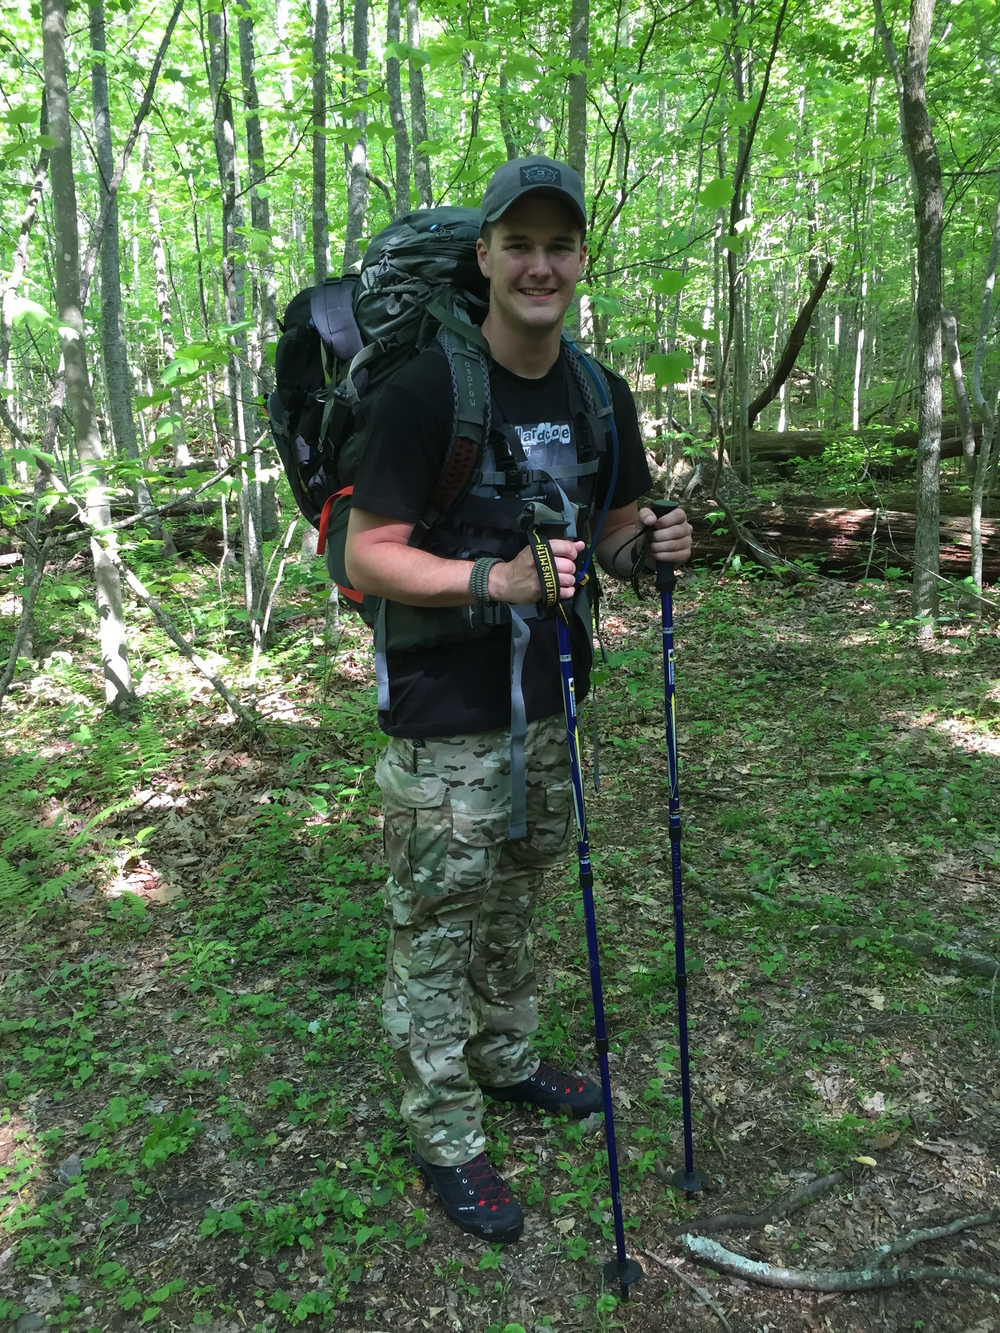 Zack on a backpacking trip in the Appalachians